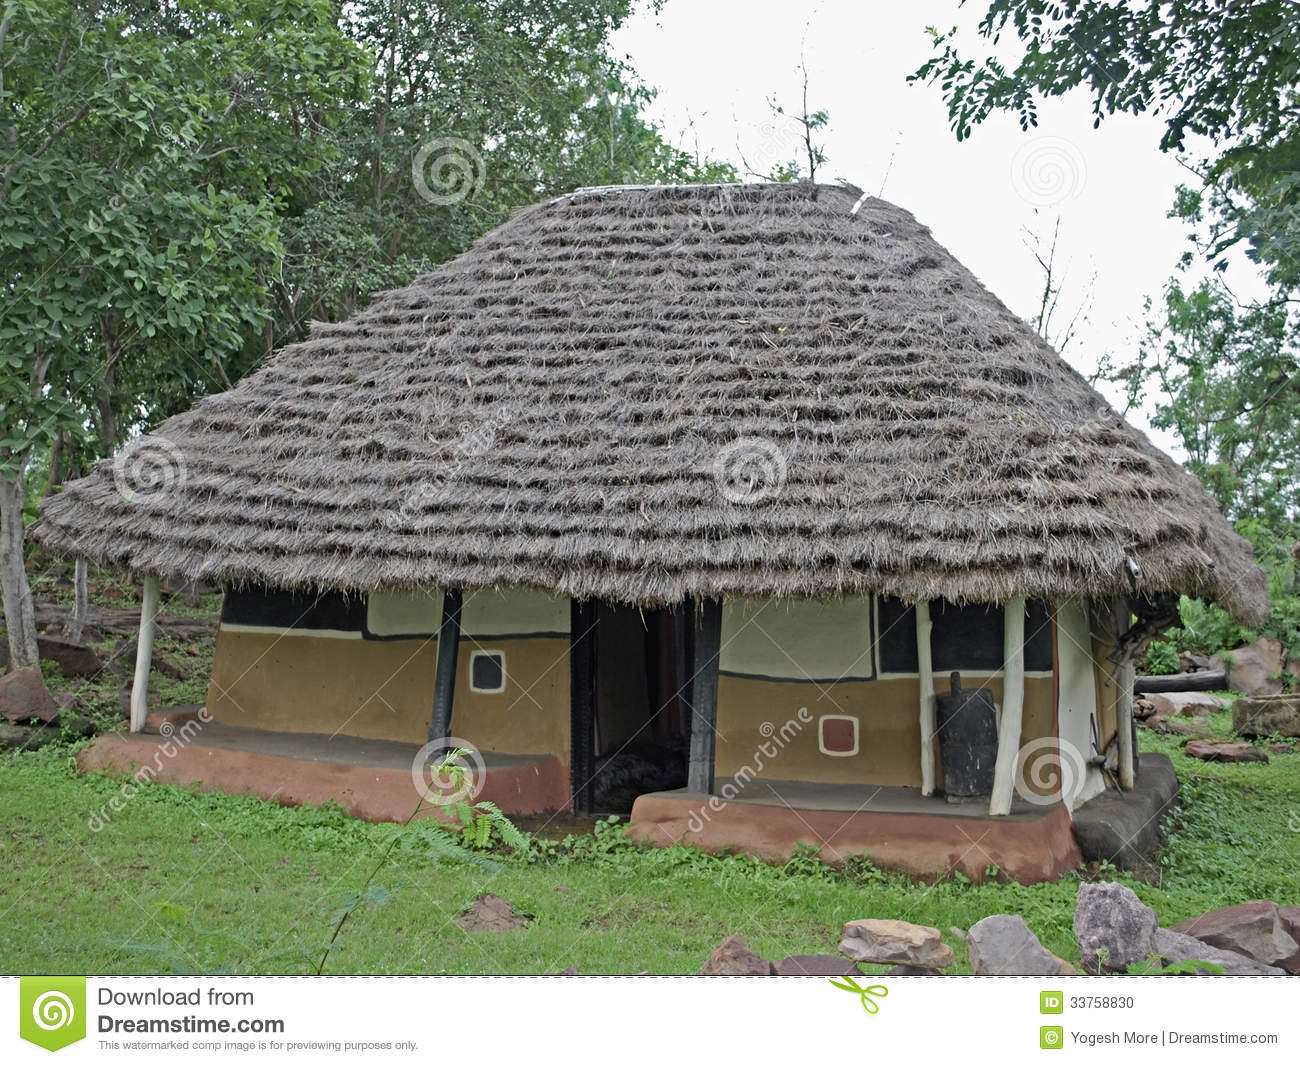 House Of Gadsbaa Agriculturists Tribal Hut Stock Photo